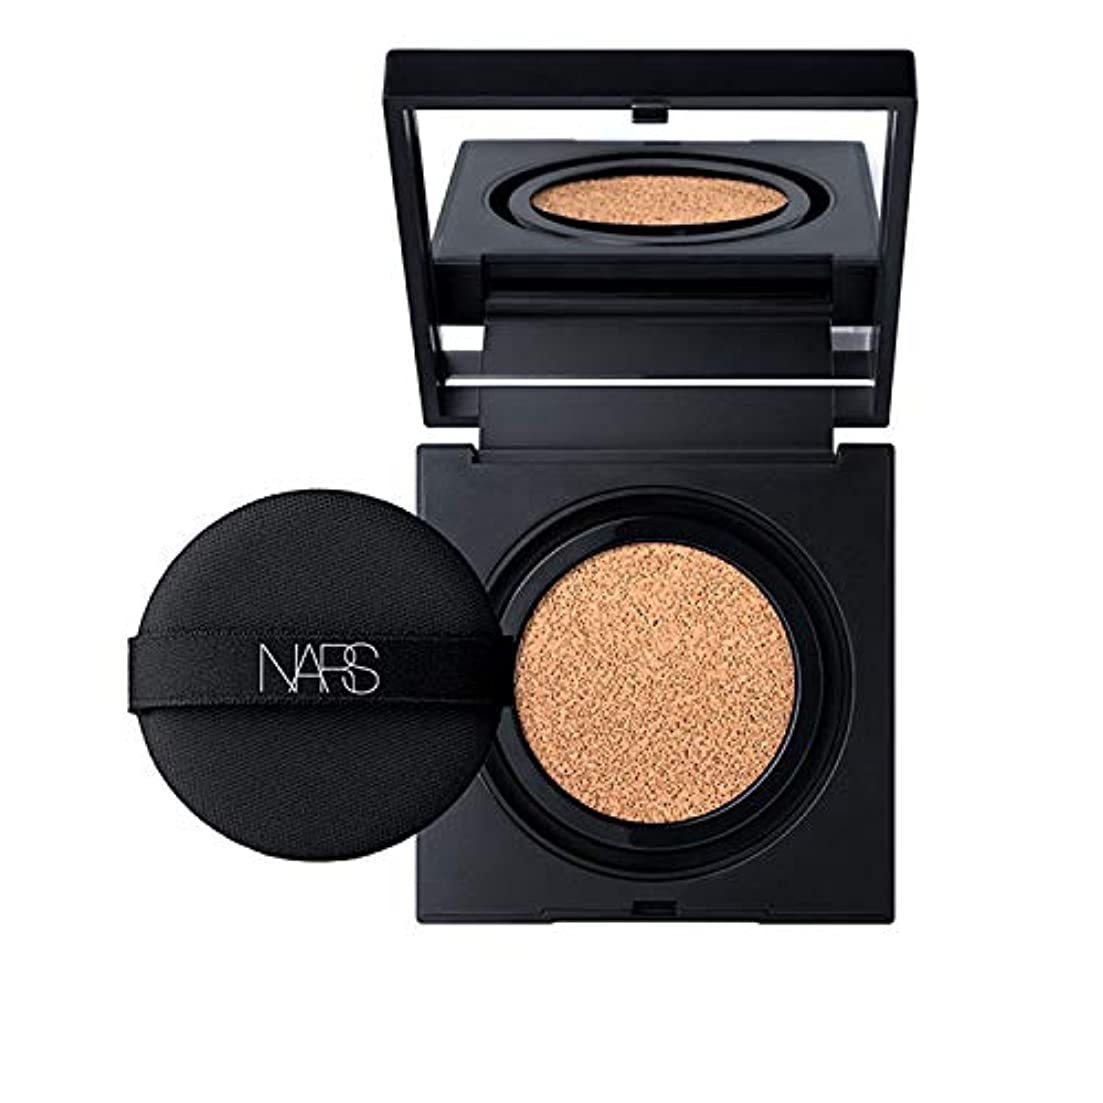 創始者強度ミリメーターNars(ナーズ) Natural Radiant Longwear Cushion Foundation 12g # Vienna